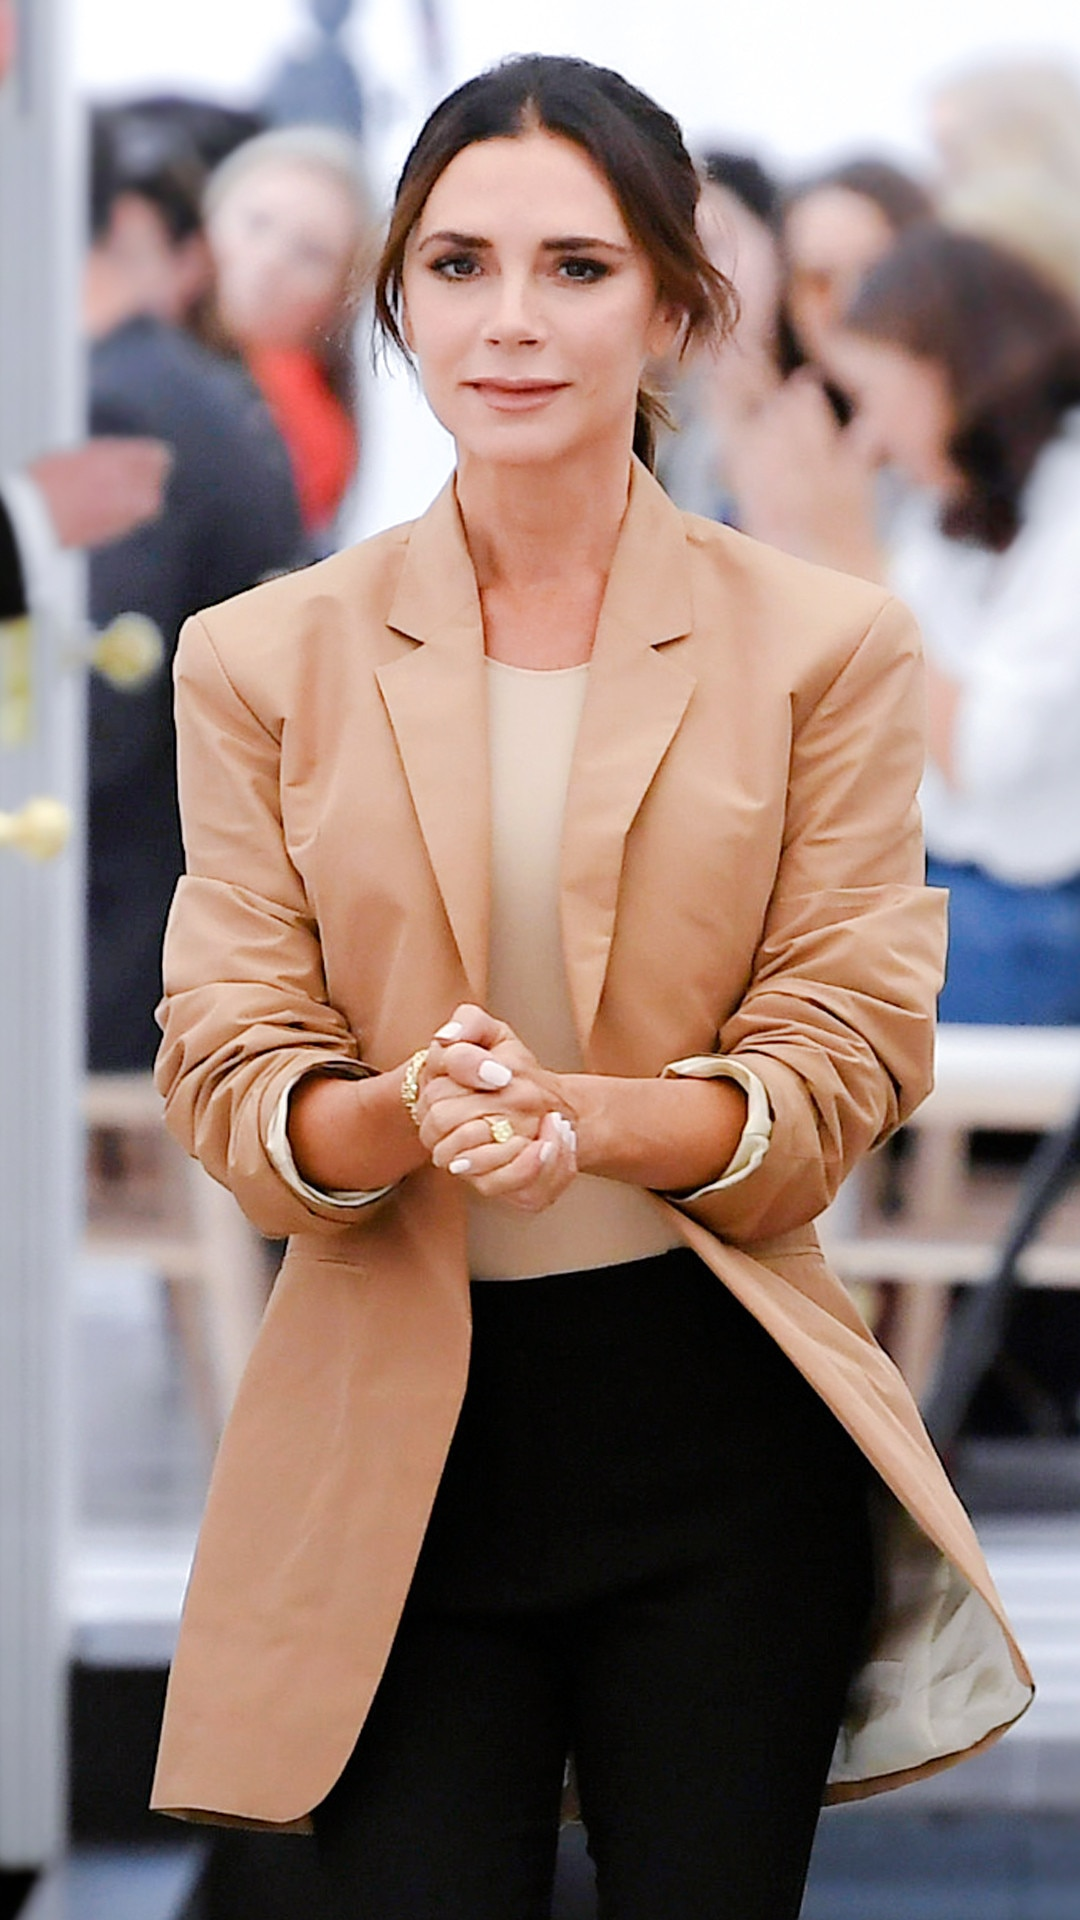 Pictures Victoria Beckham nudes (49 foto and video), Sexy, Paparazzi, Feet, braless 2017